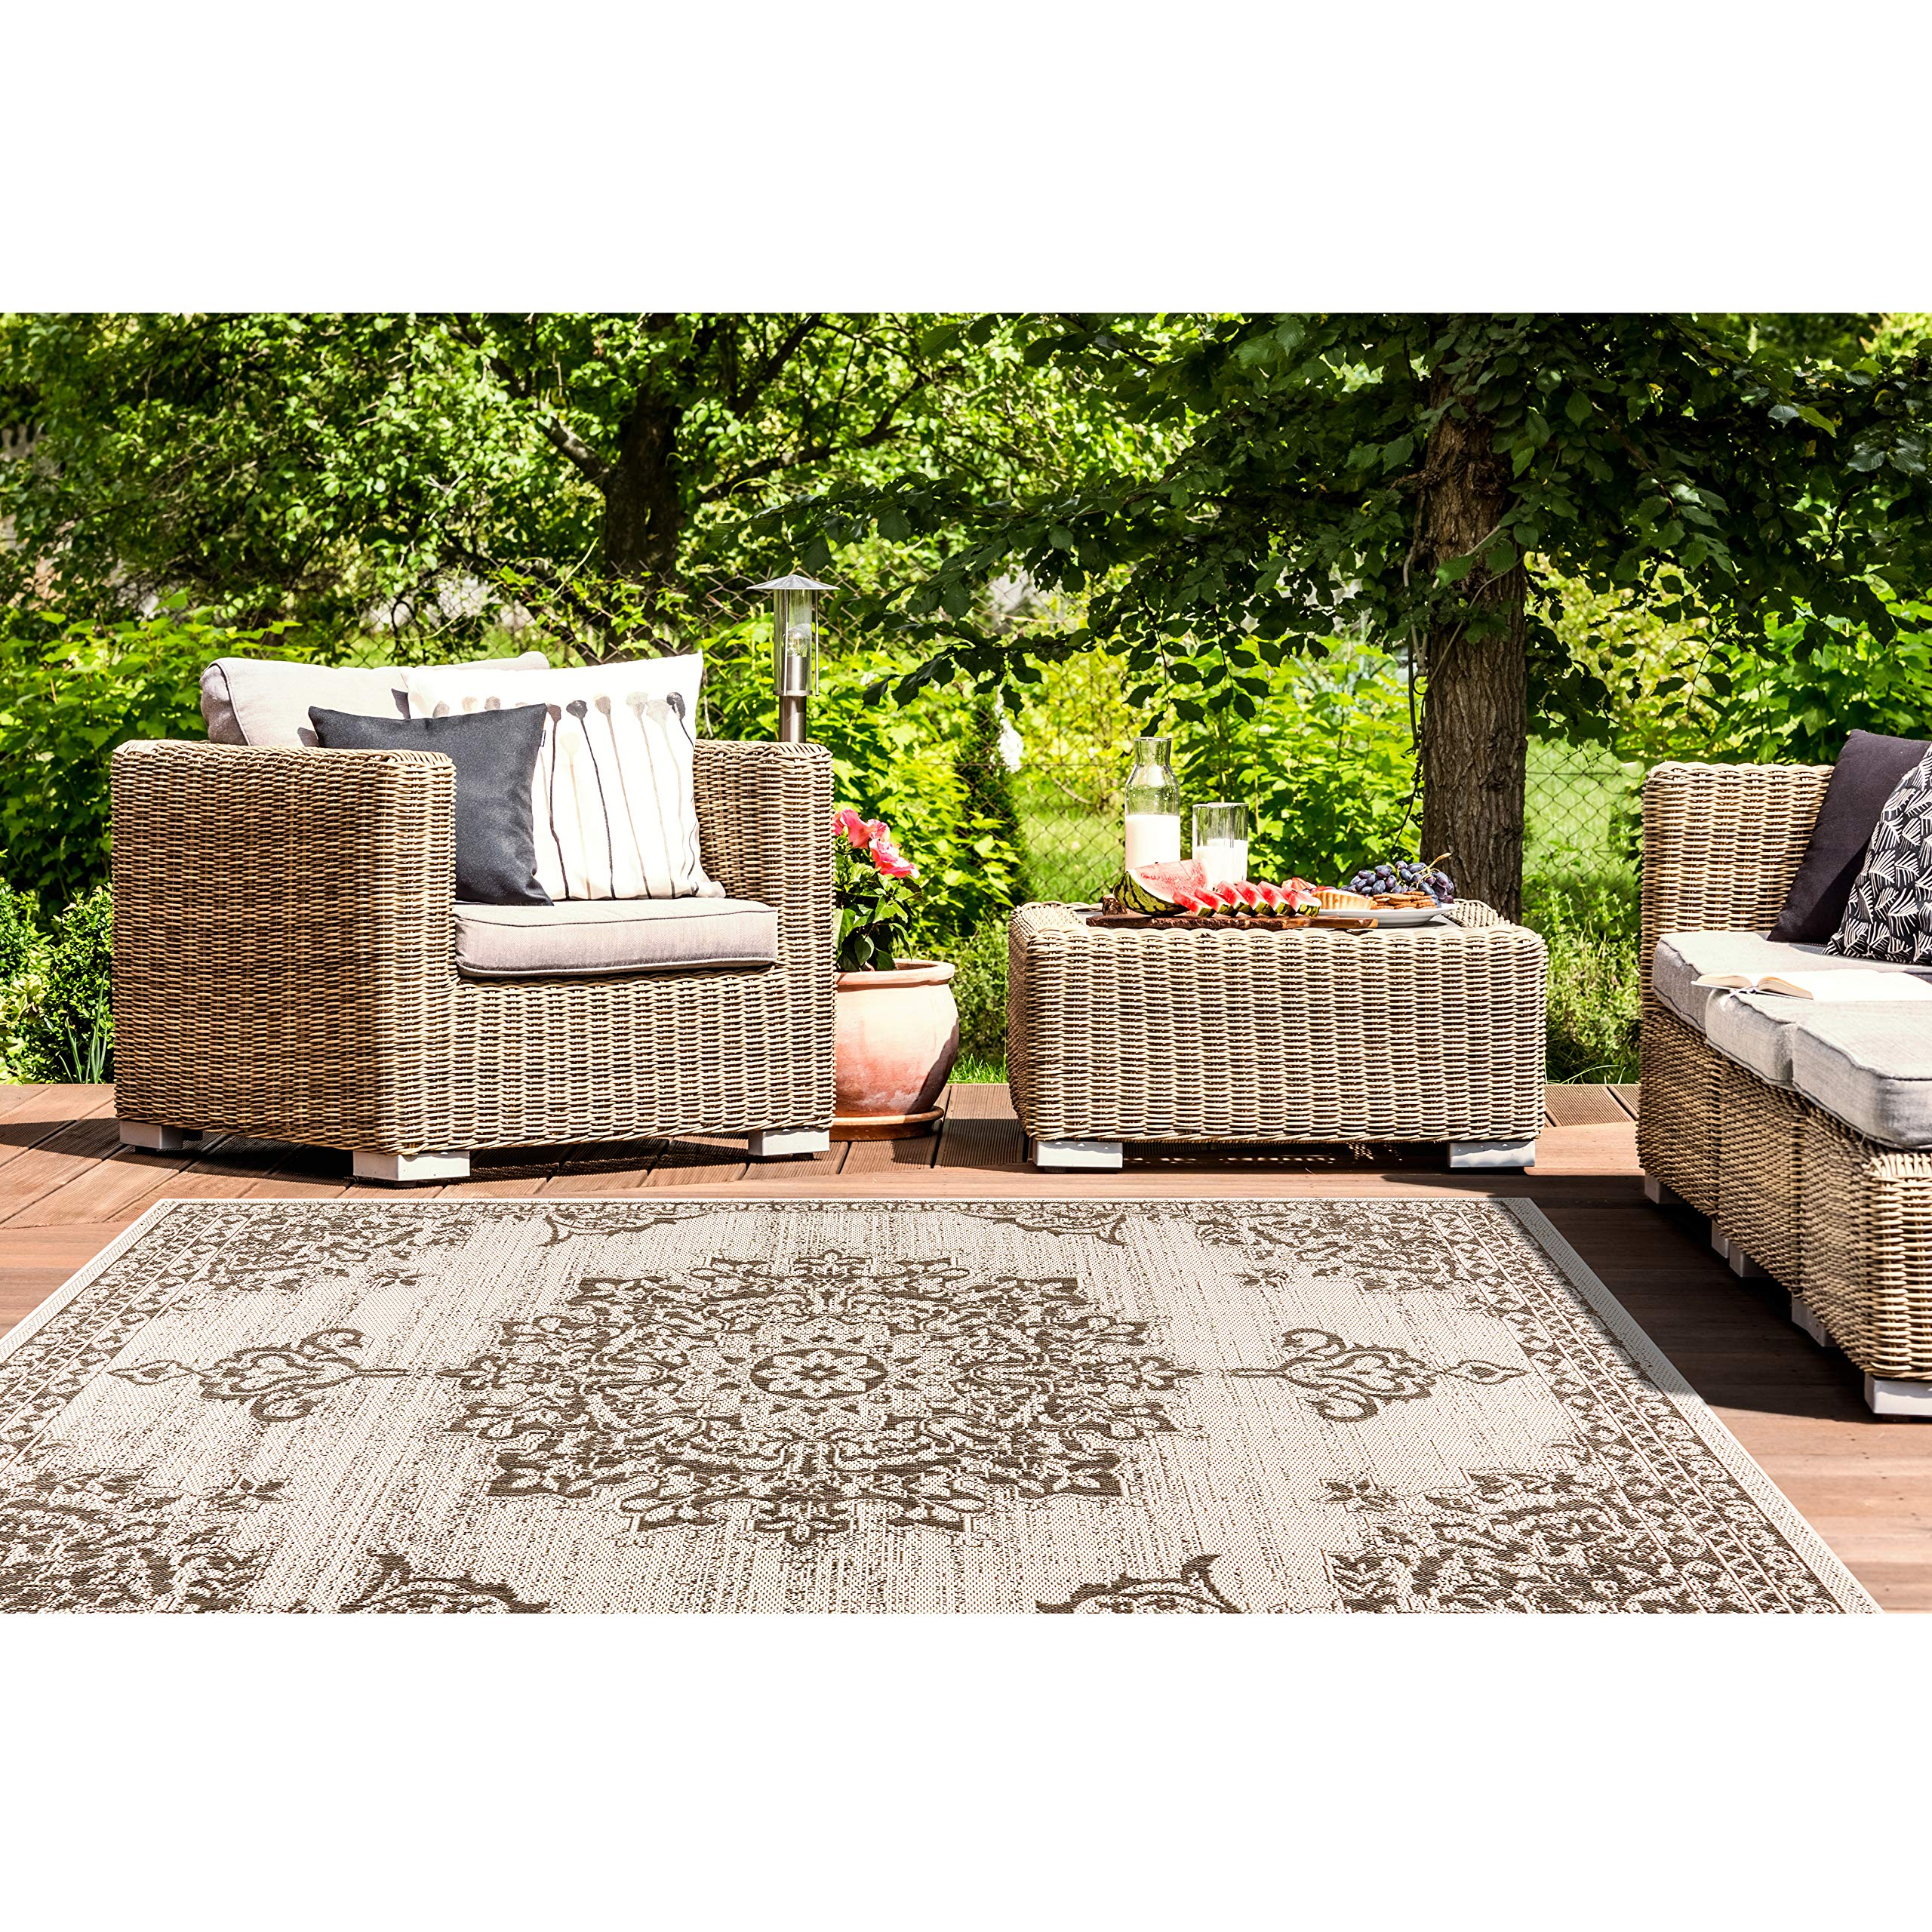 Home Dynamix Nicole Miller Patio Country Azalea Indoor/Outdoor Area Rug 7'9''x10'2'', Traditional Medallion Gray/Black by Home Dynamix (Image #8)